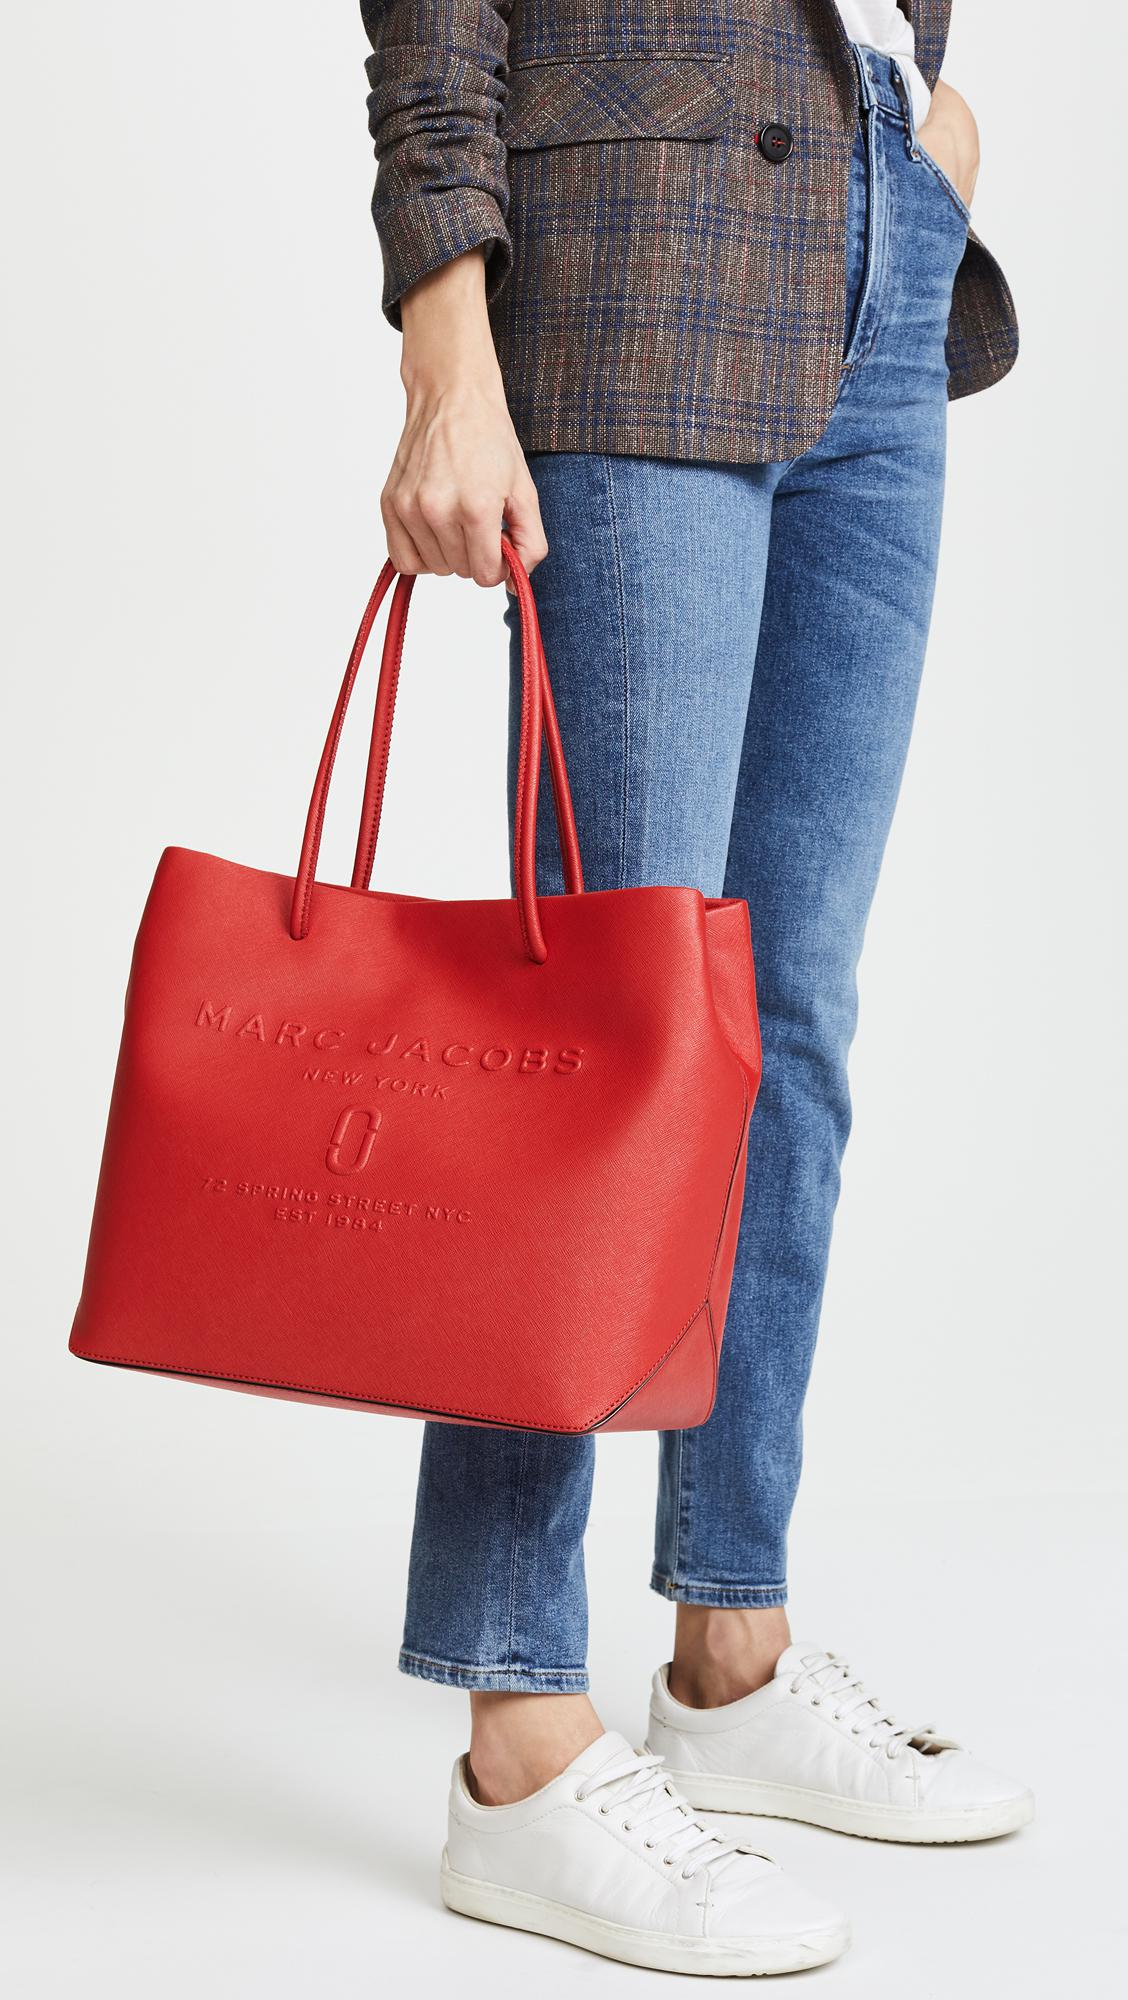 Marc Jacobs Leather Logo Shopper Tote in Red